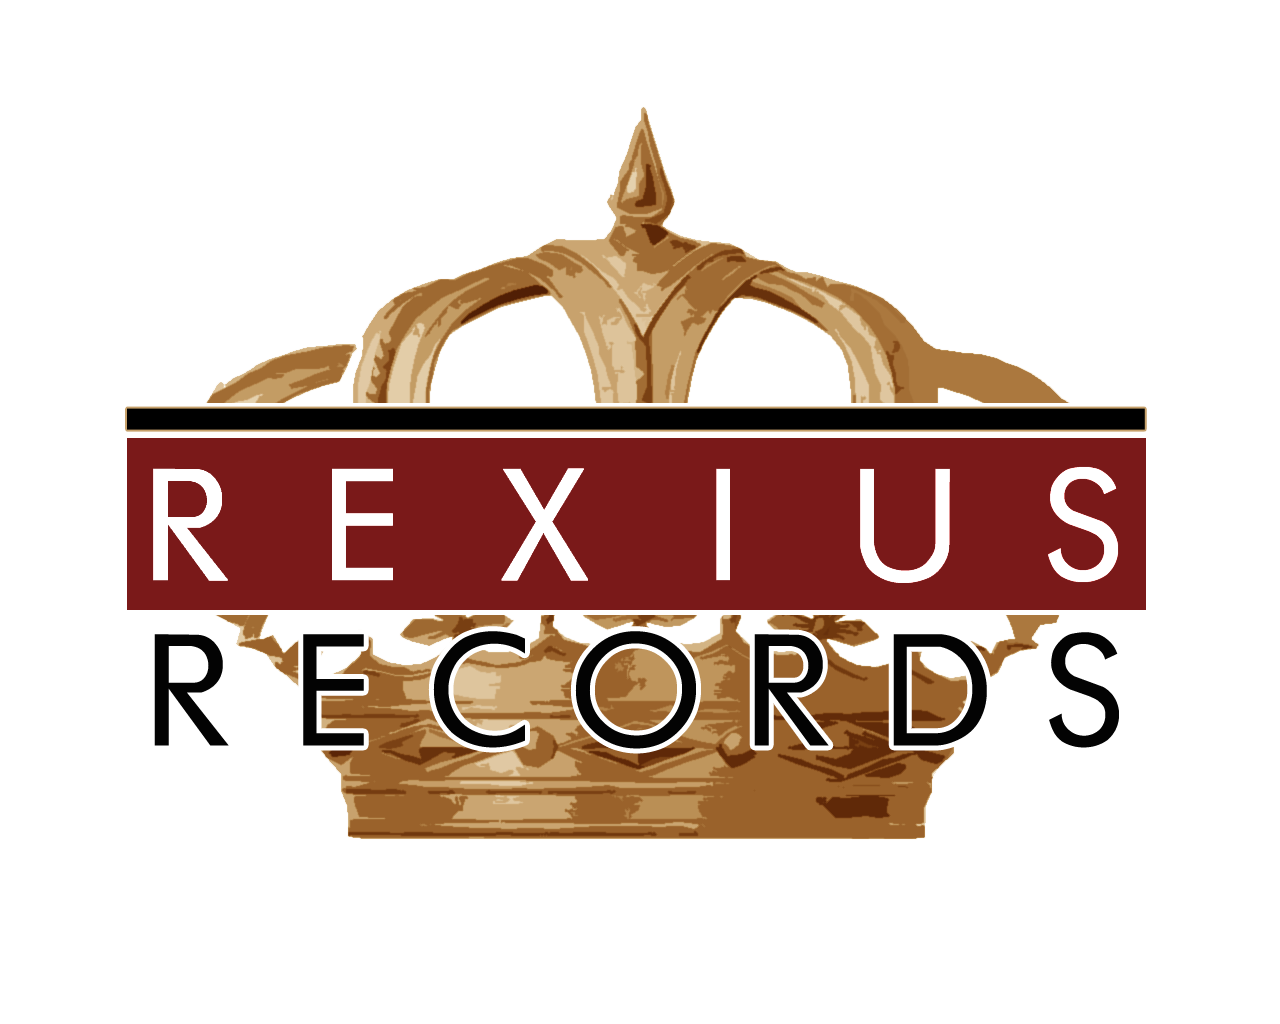 Submit Demo - Get Signed by verified Record Labels - Submit